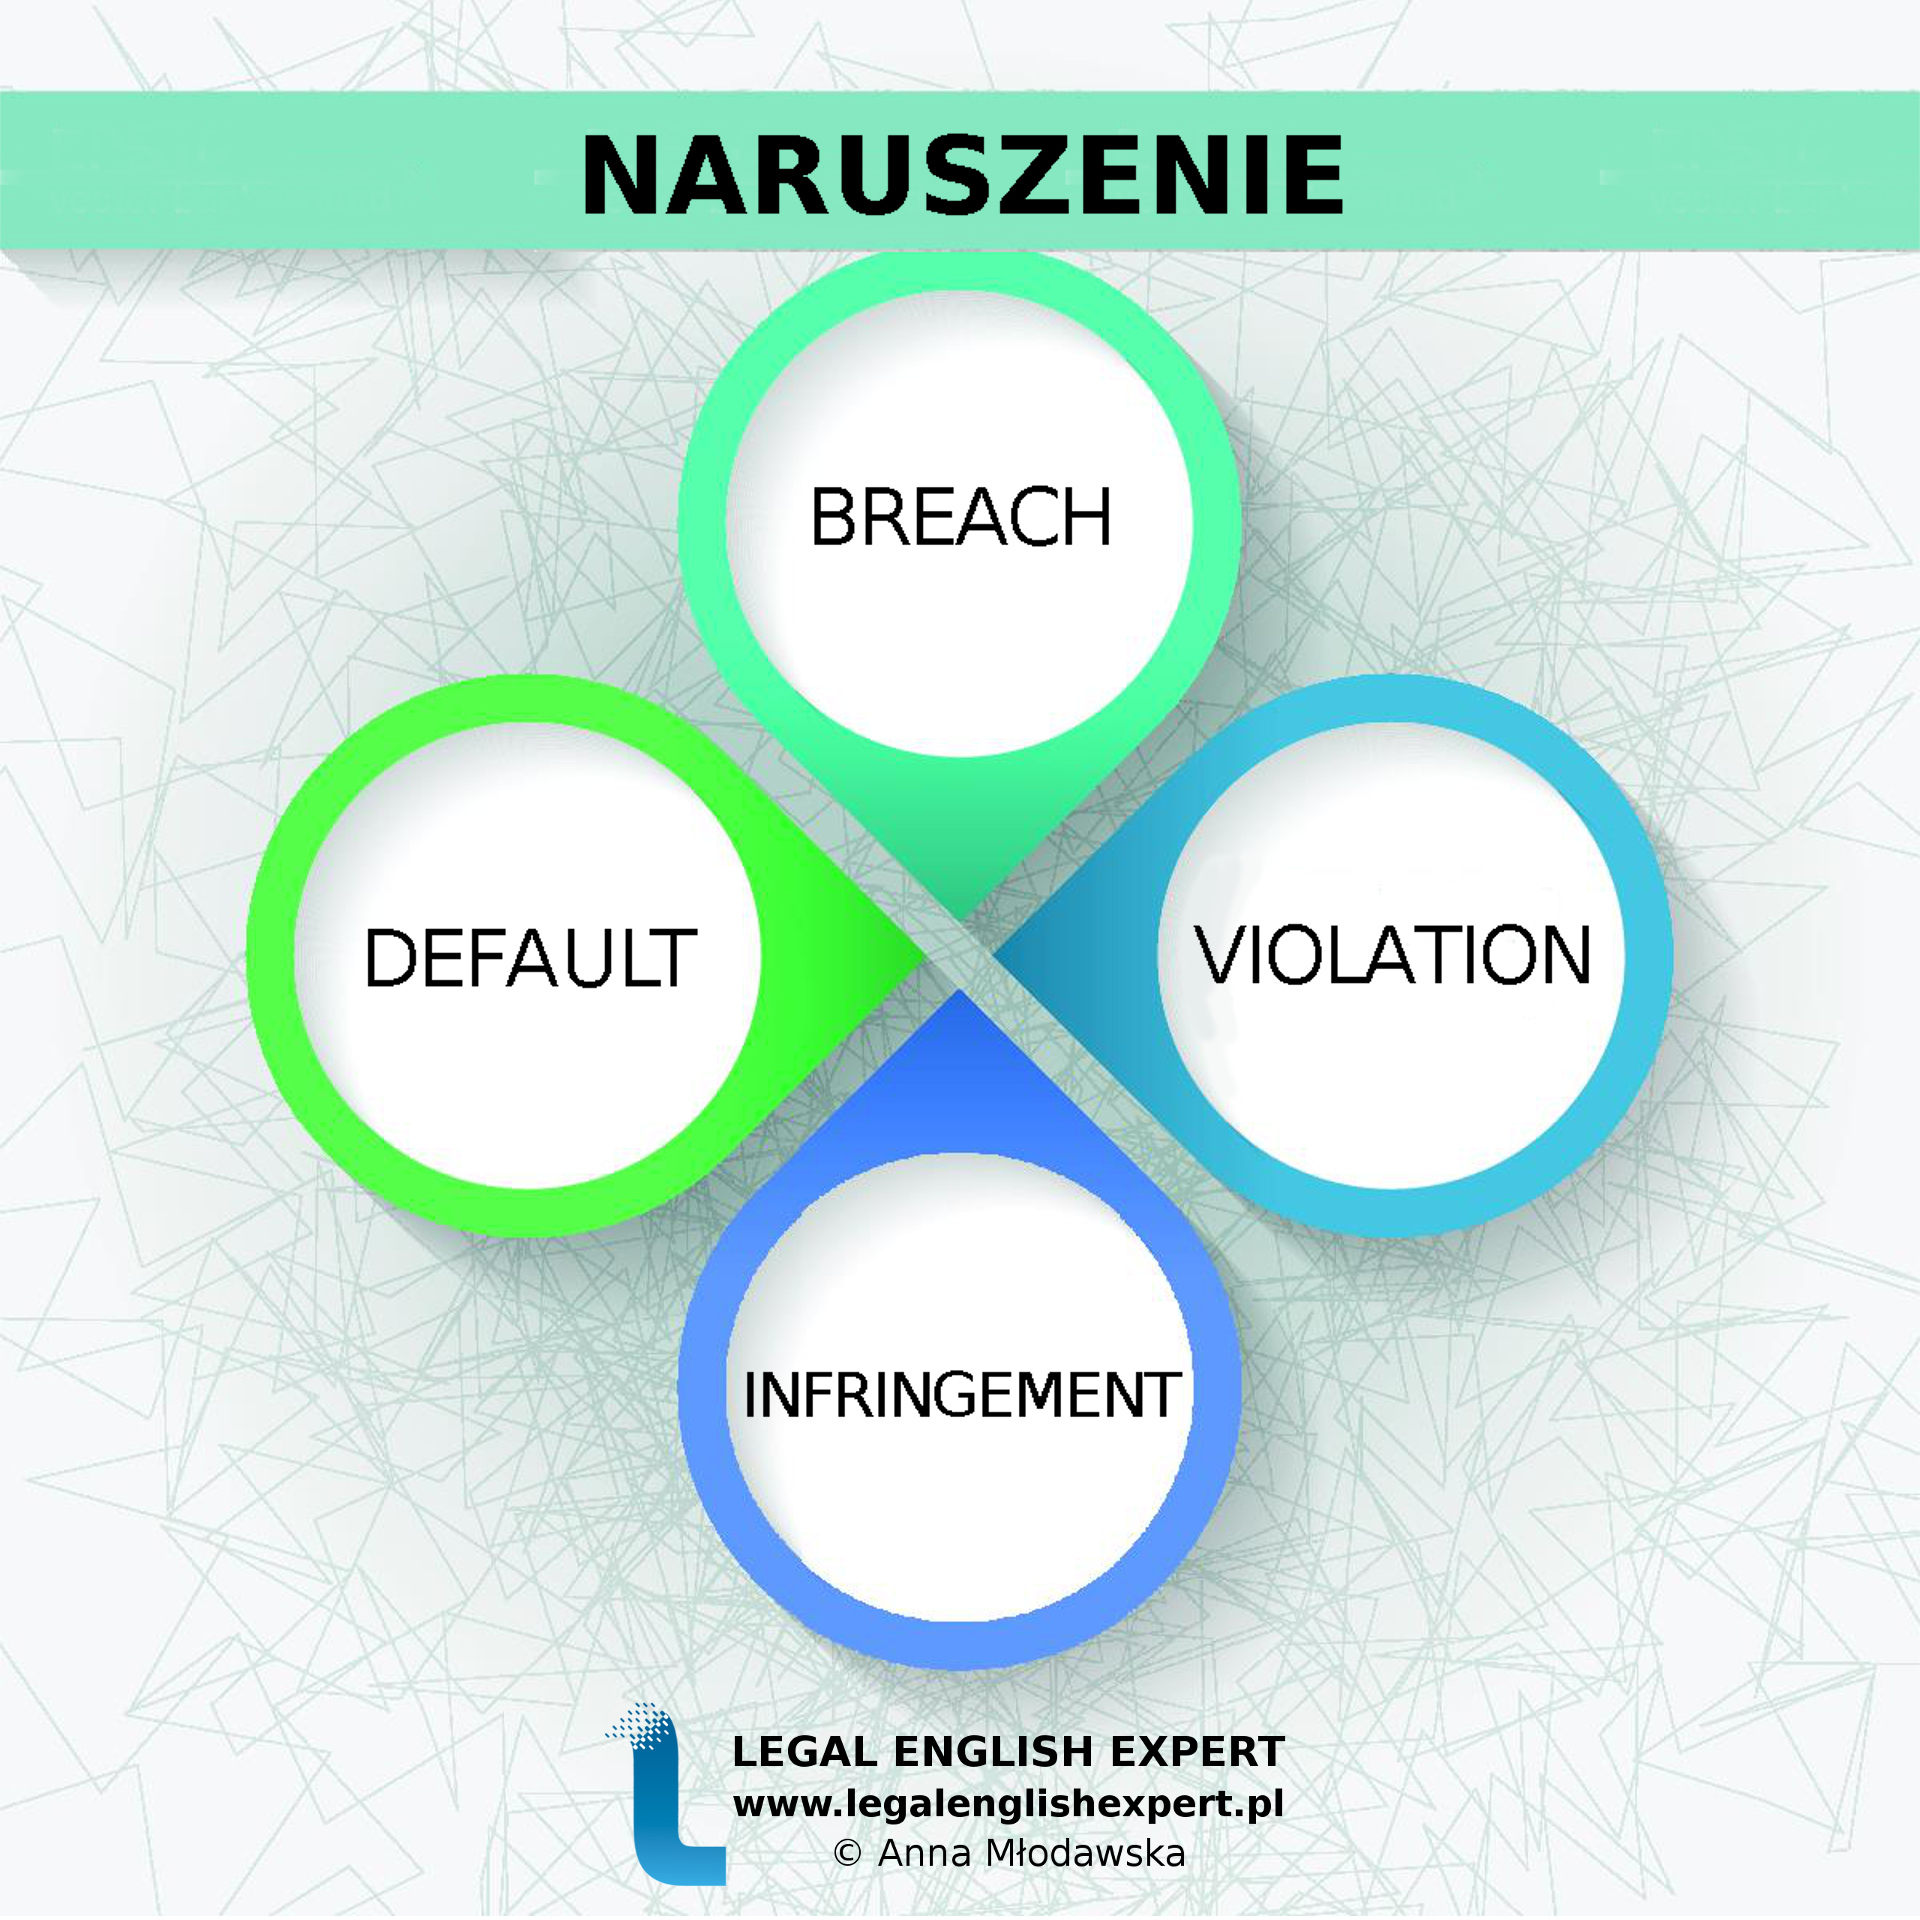 LEGAL ENGLISH EXPERT - infografika_36 - naruszenie